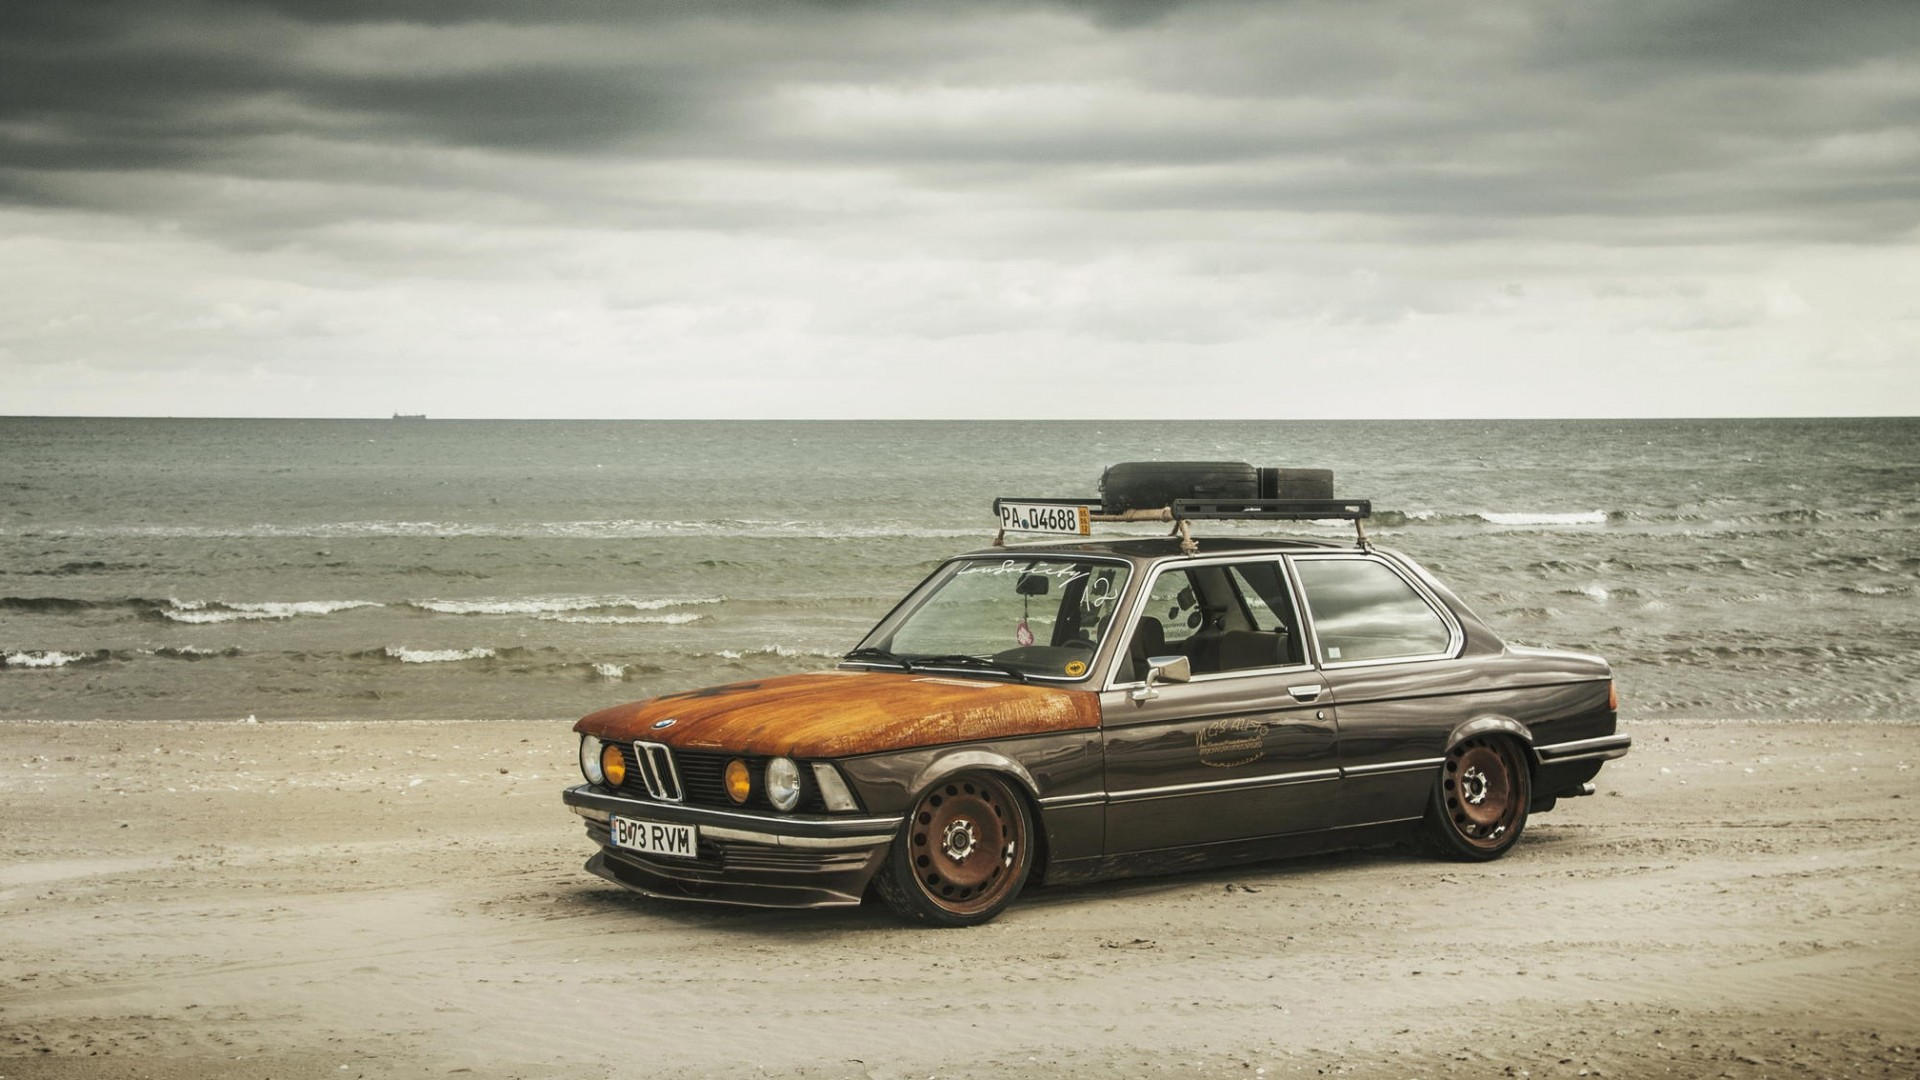 1920x1080 Full HD Wallpaper bmw vintage beach ancient overcast rust